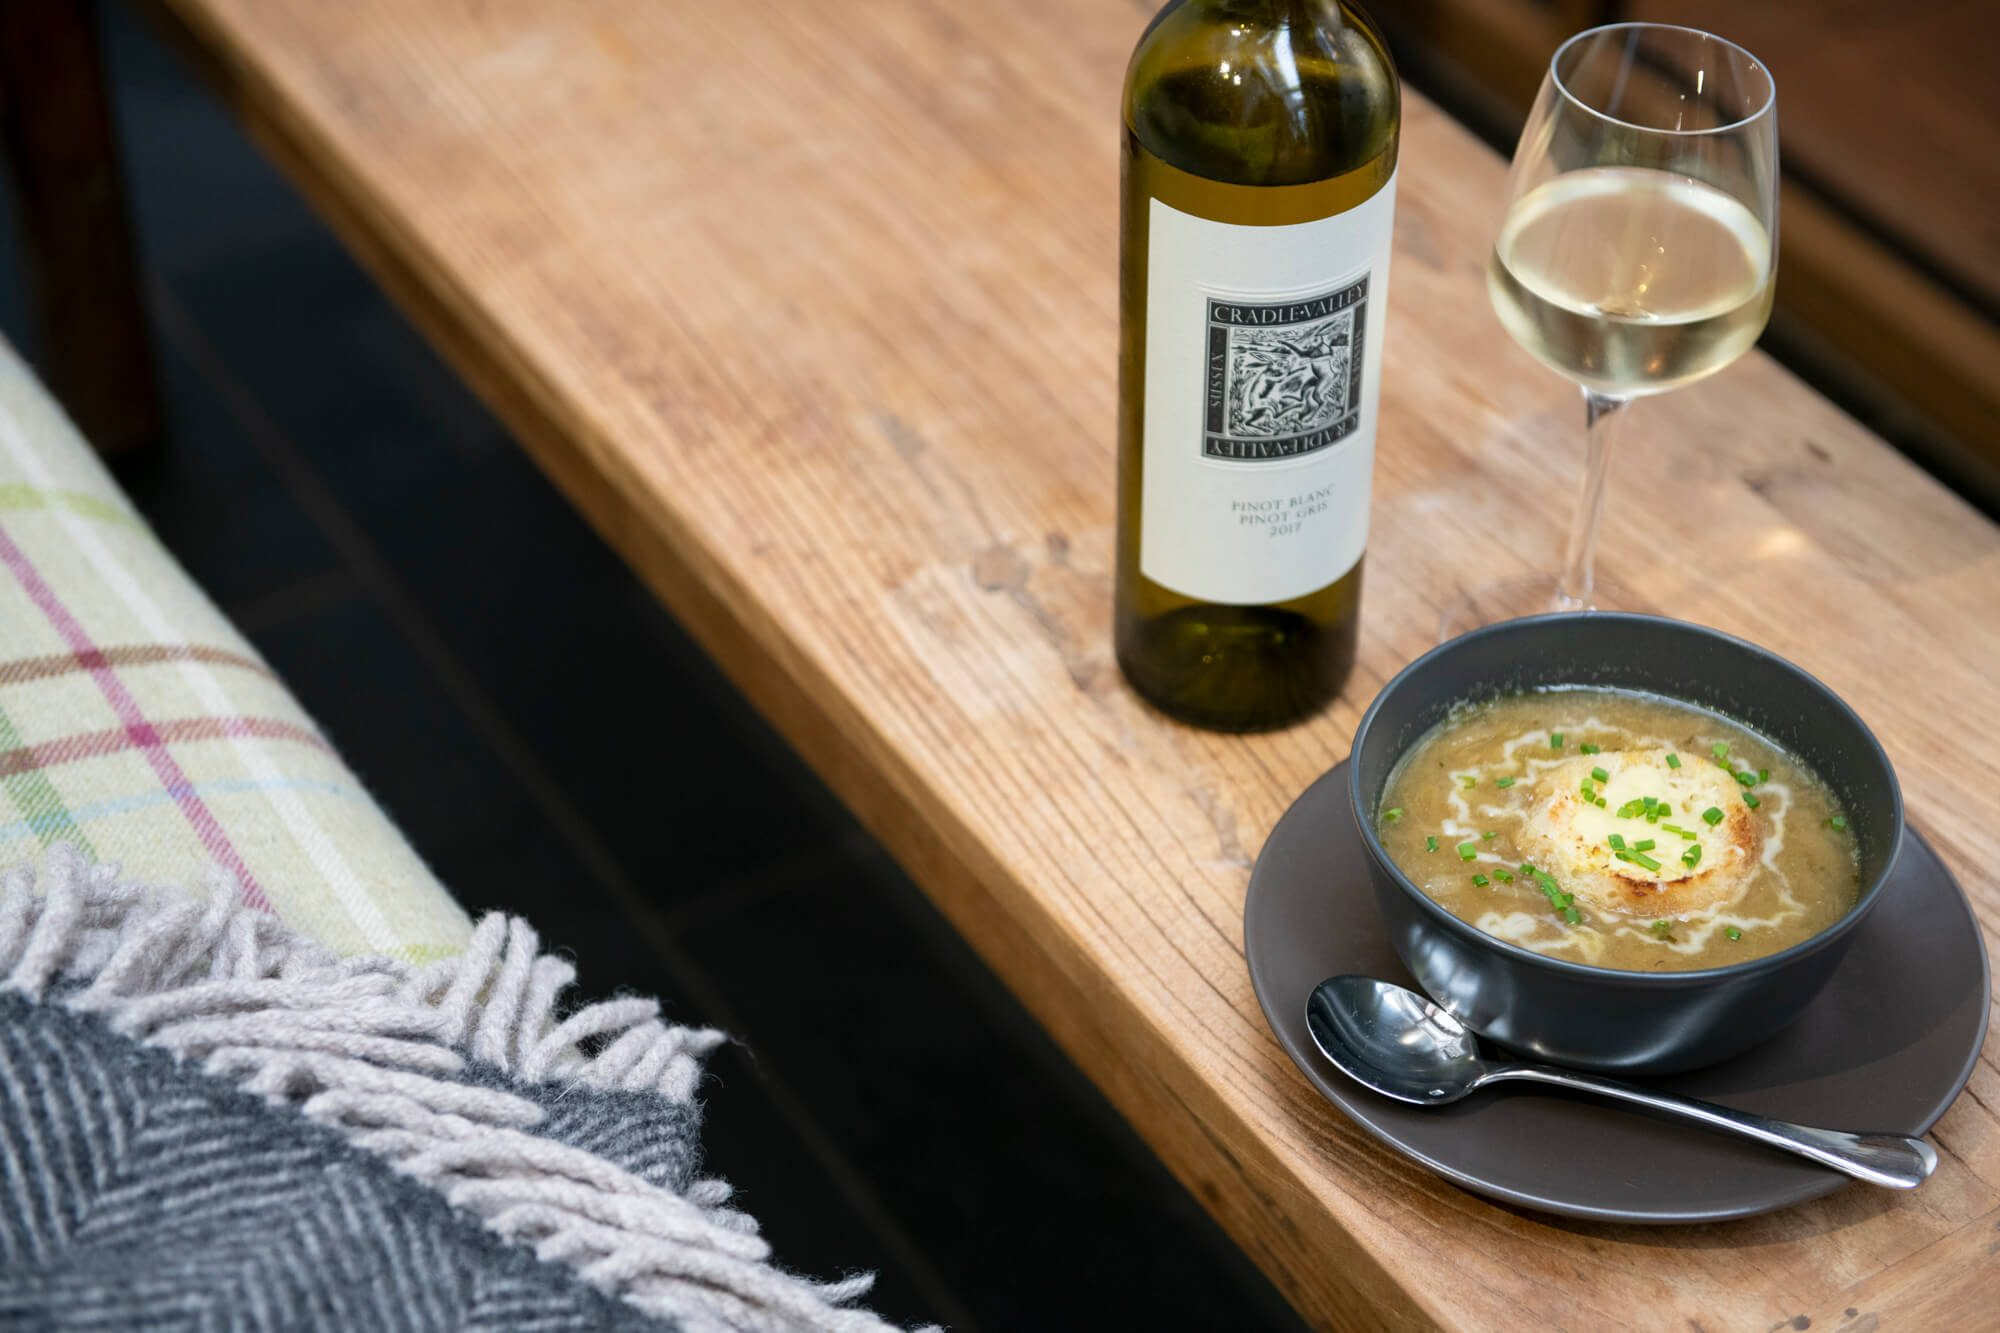 Onion Soup and Cradle Valley White Wine